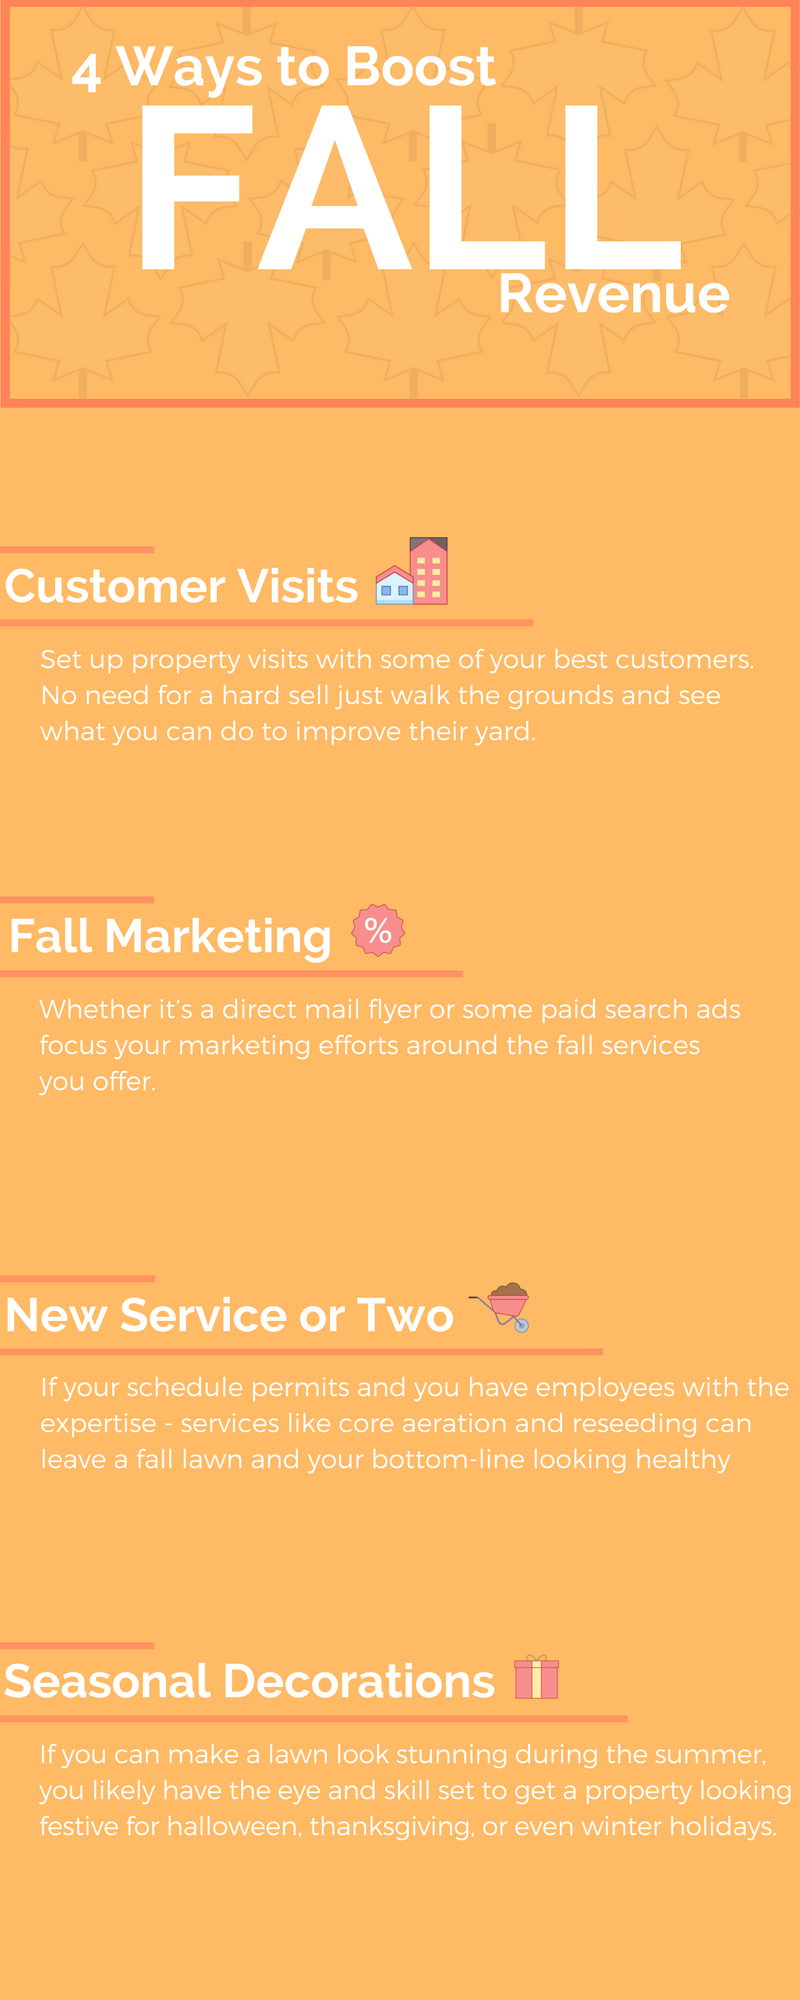 4 Ways Your Lawn Care Business can Boost Fall Revenue.png